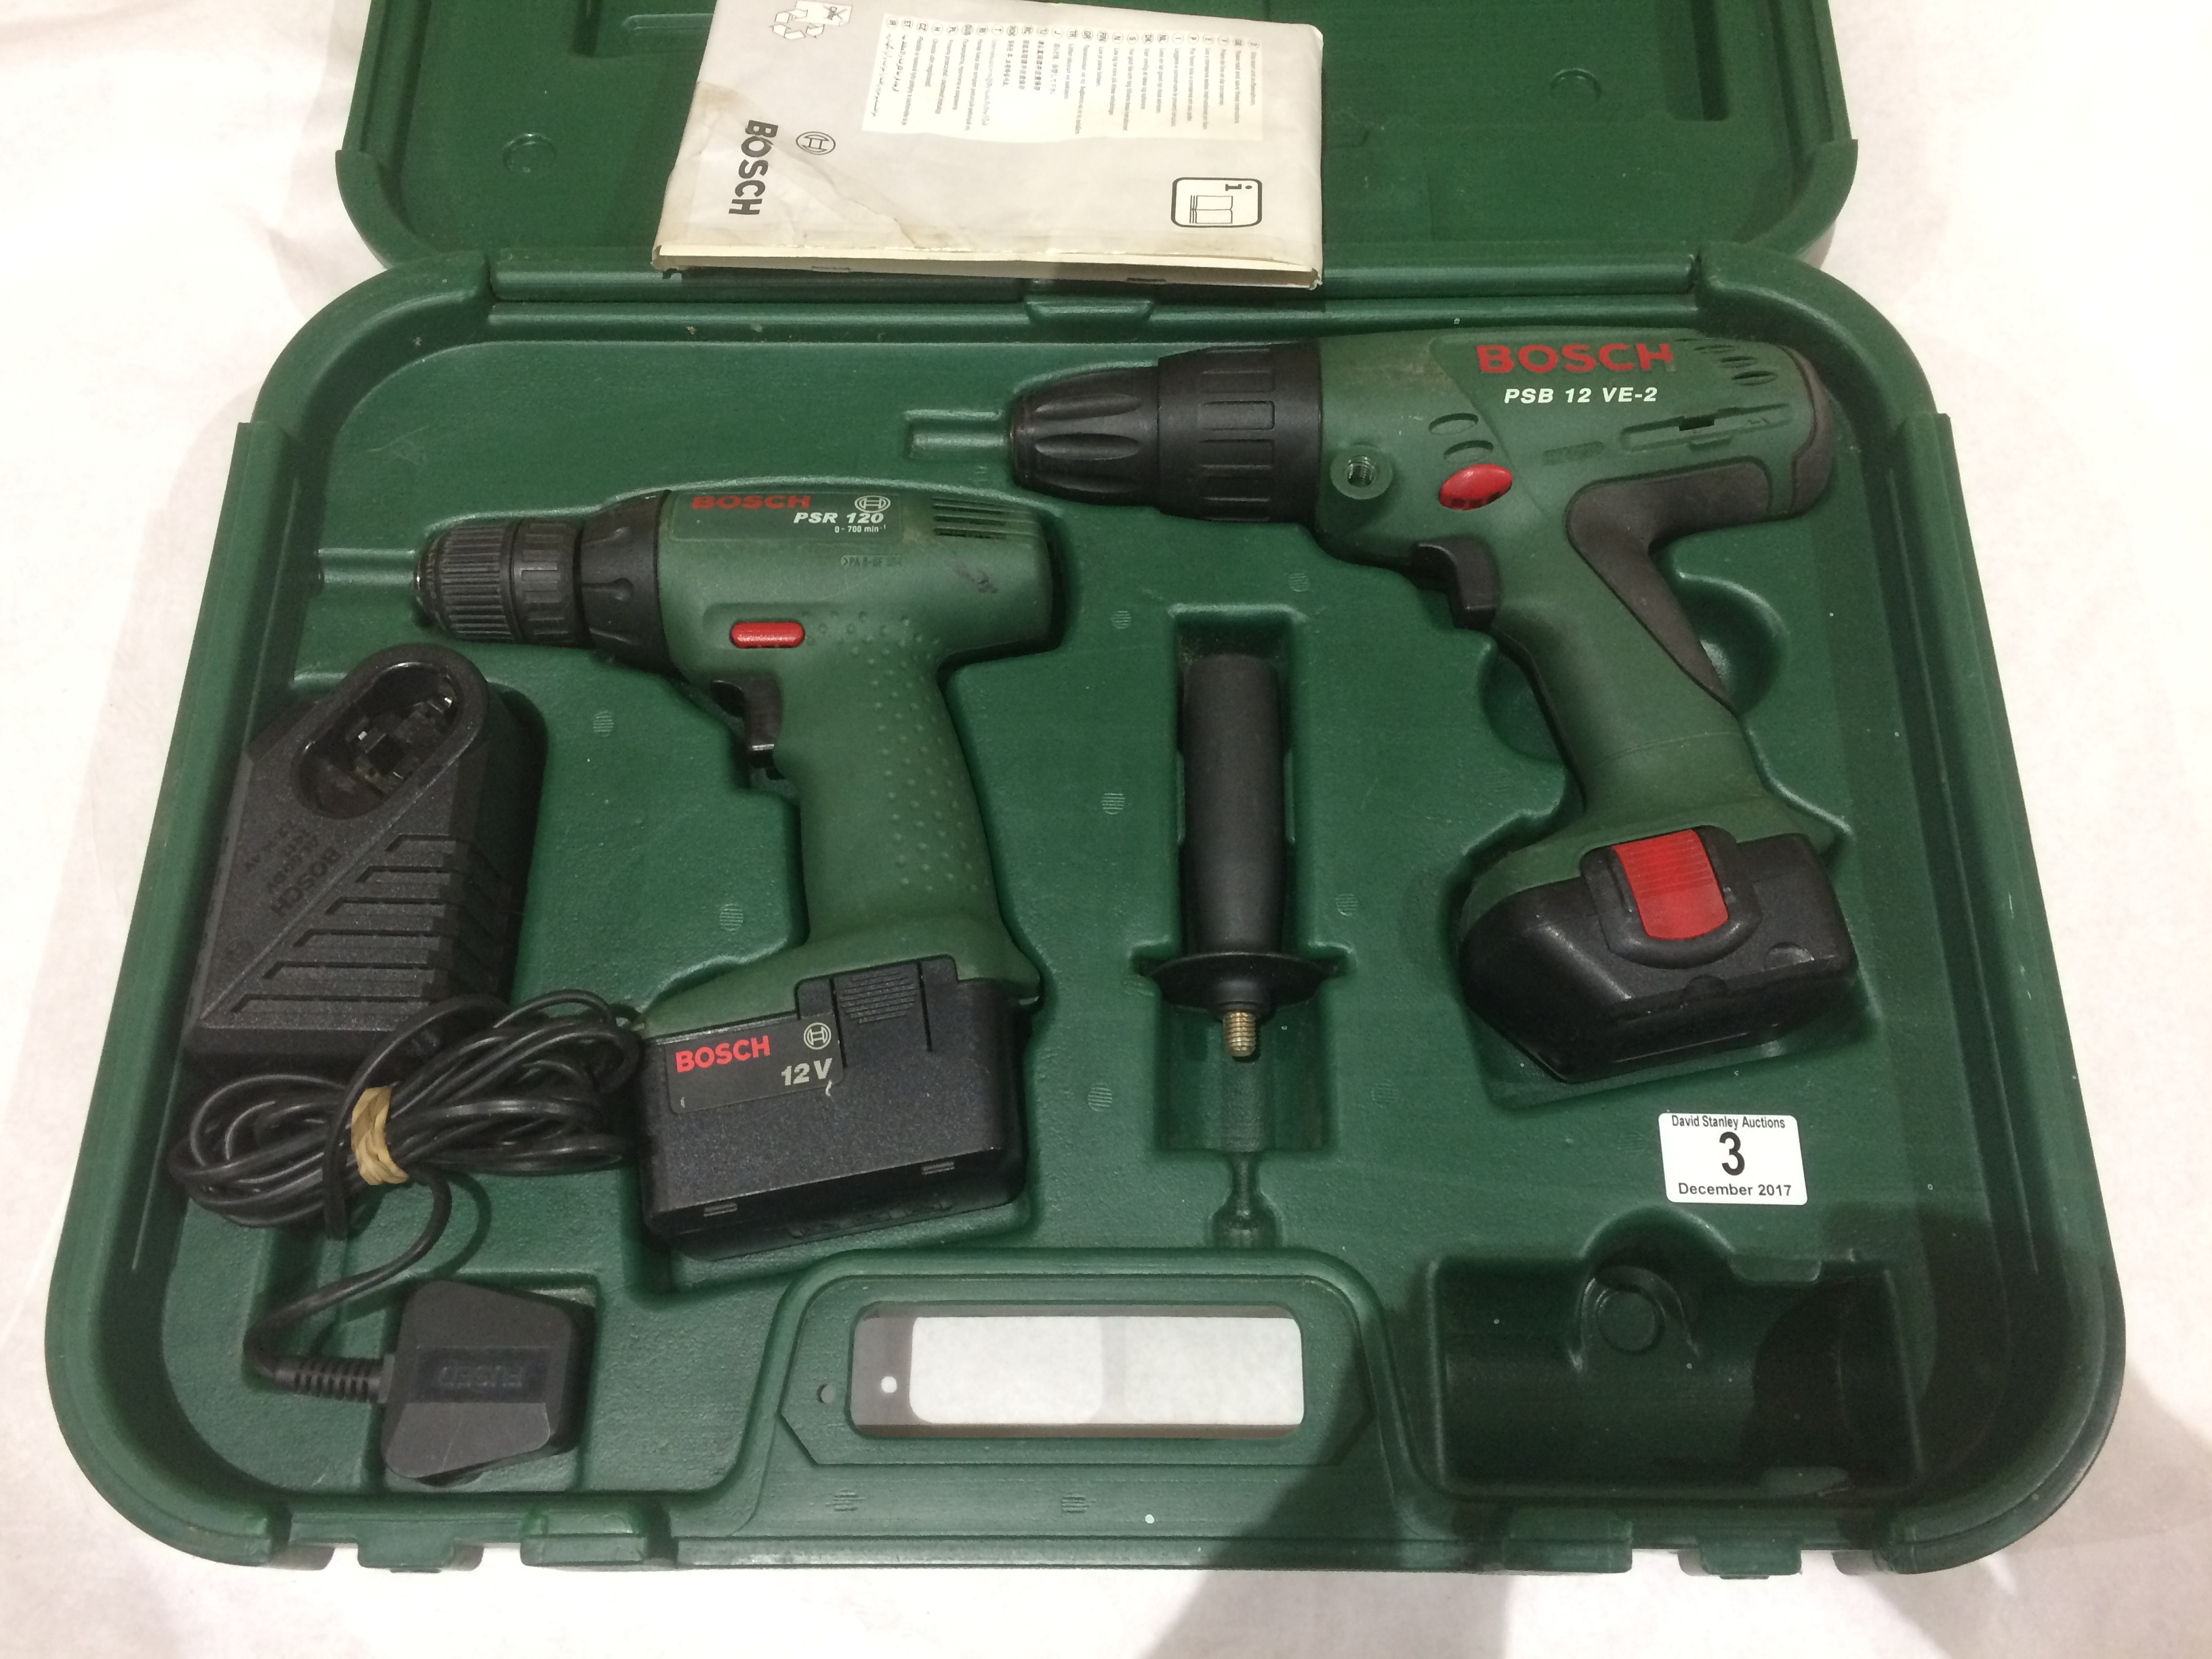 Lot 3 - BOSH PSB12 & PSR120 cordless drills as new